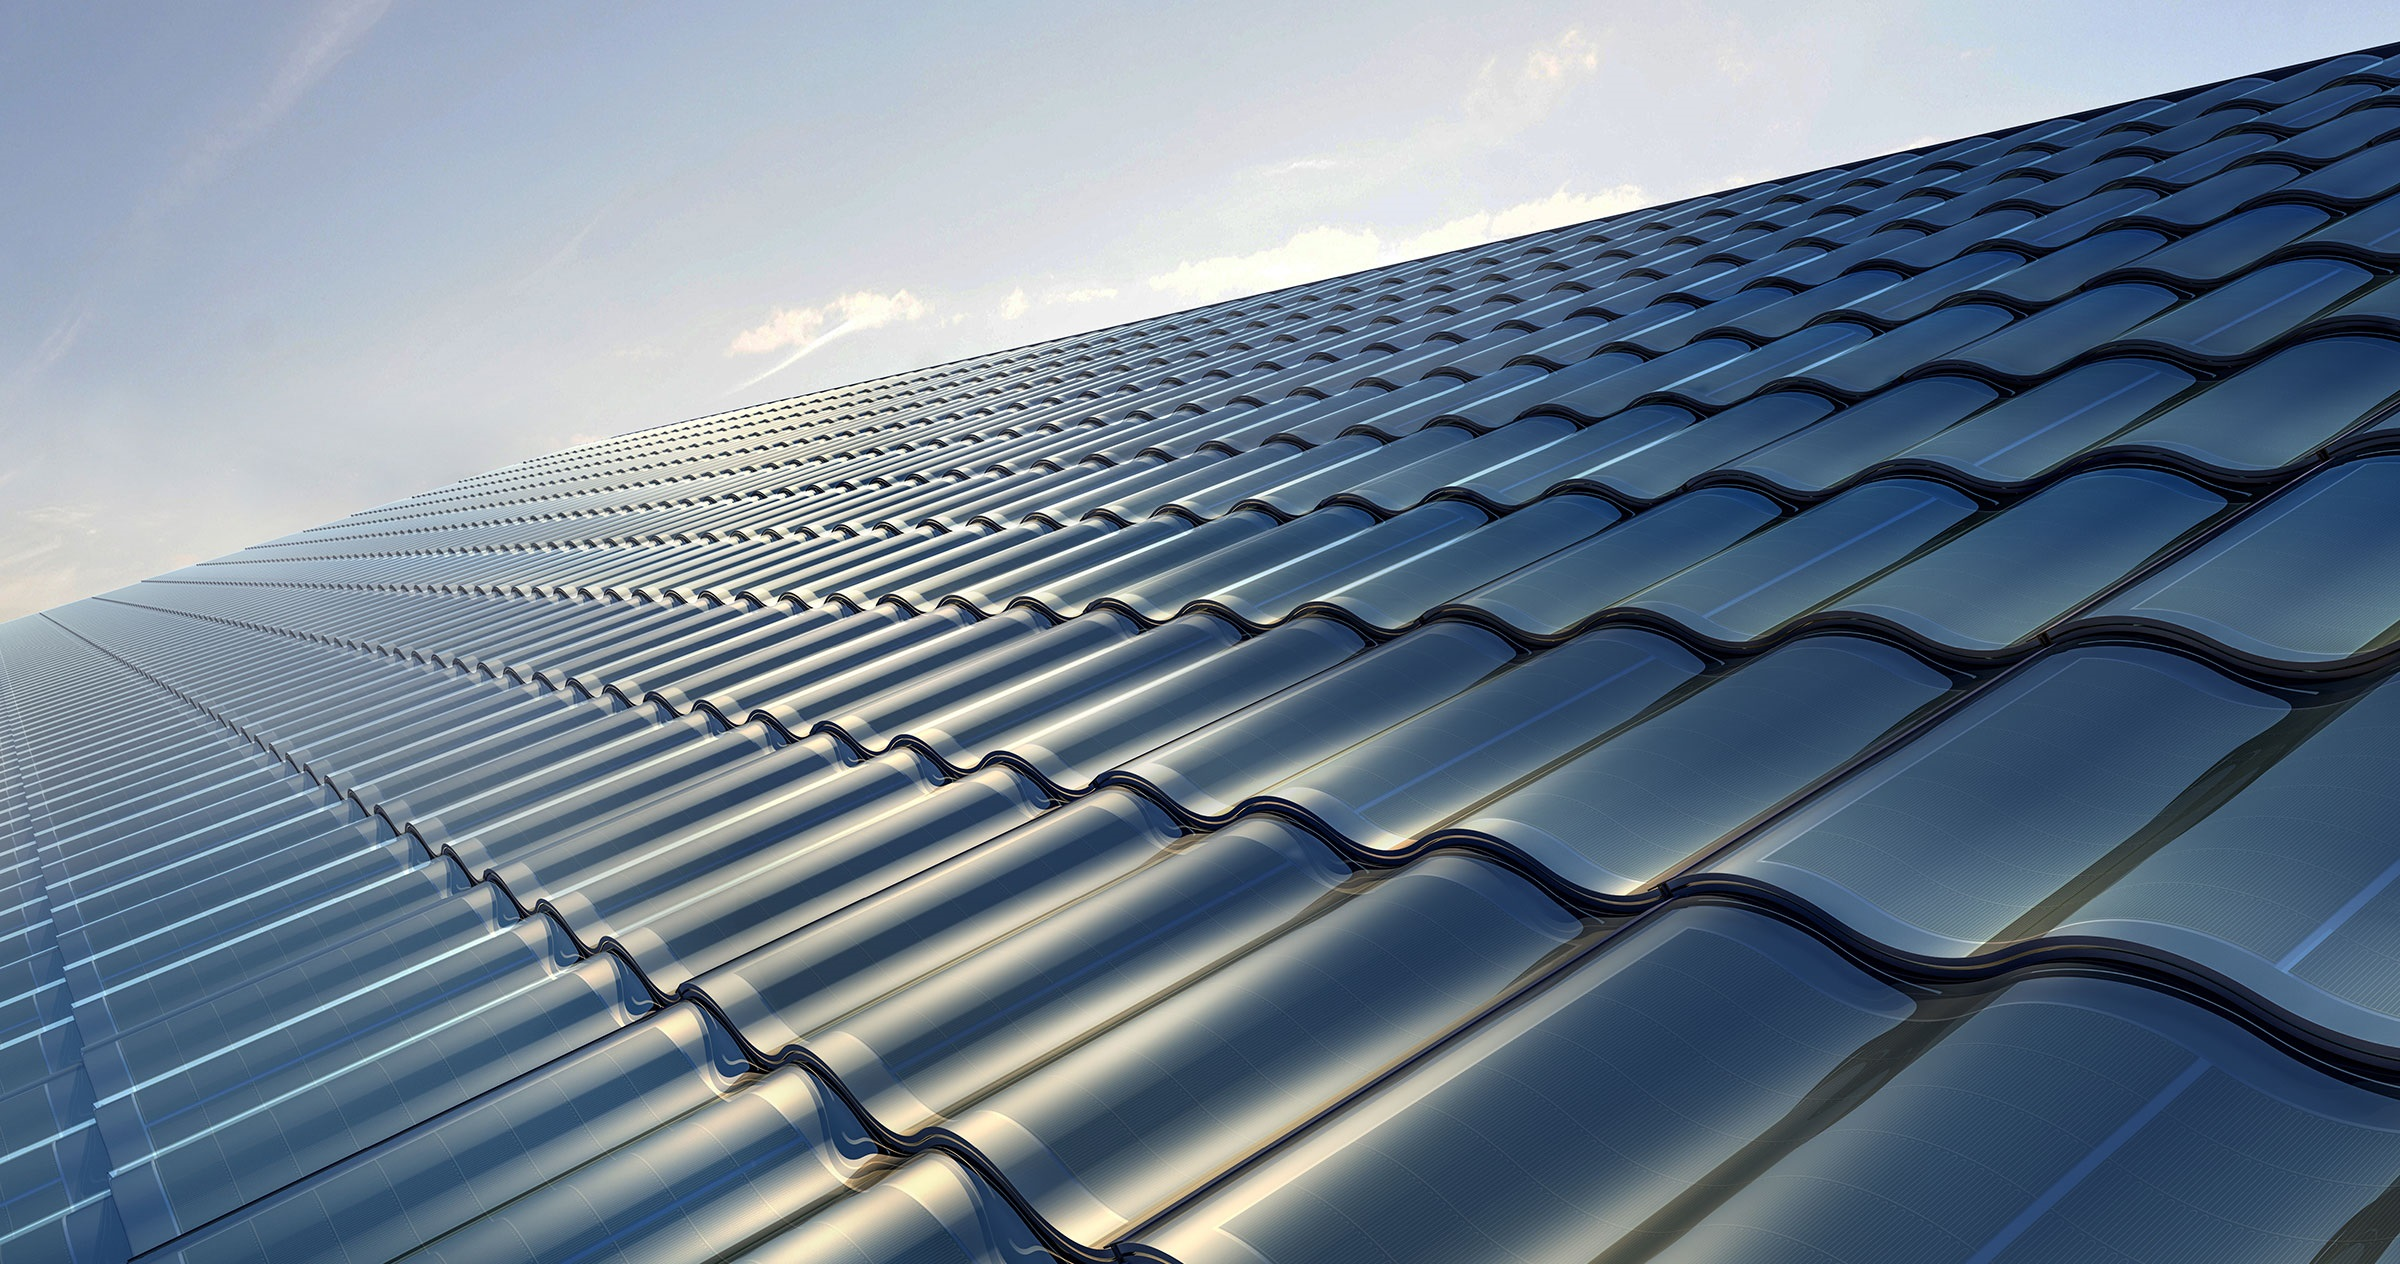 Quality & Affordable Roofing Tiles